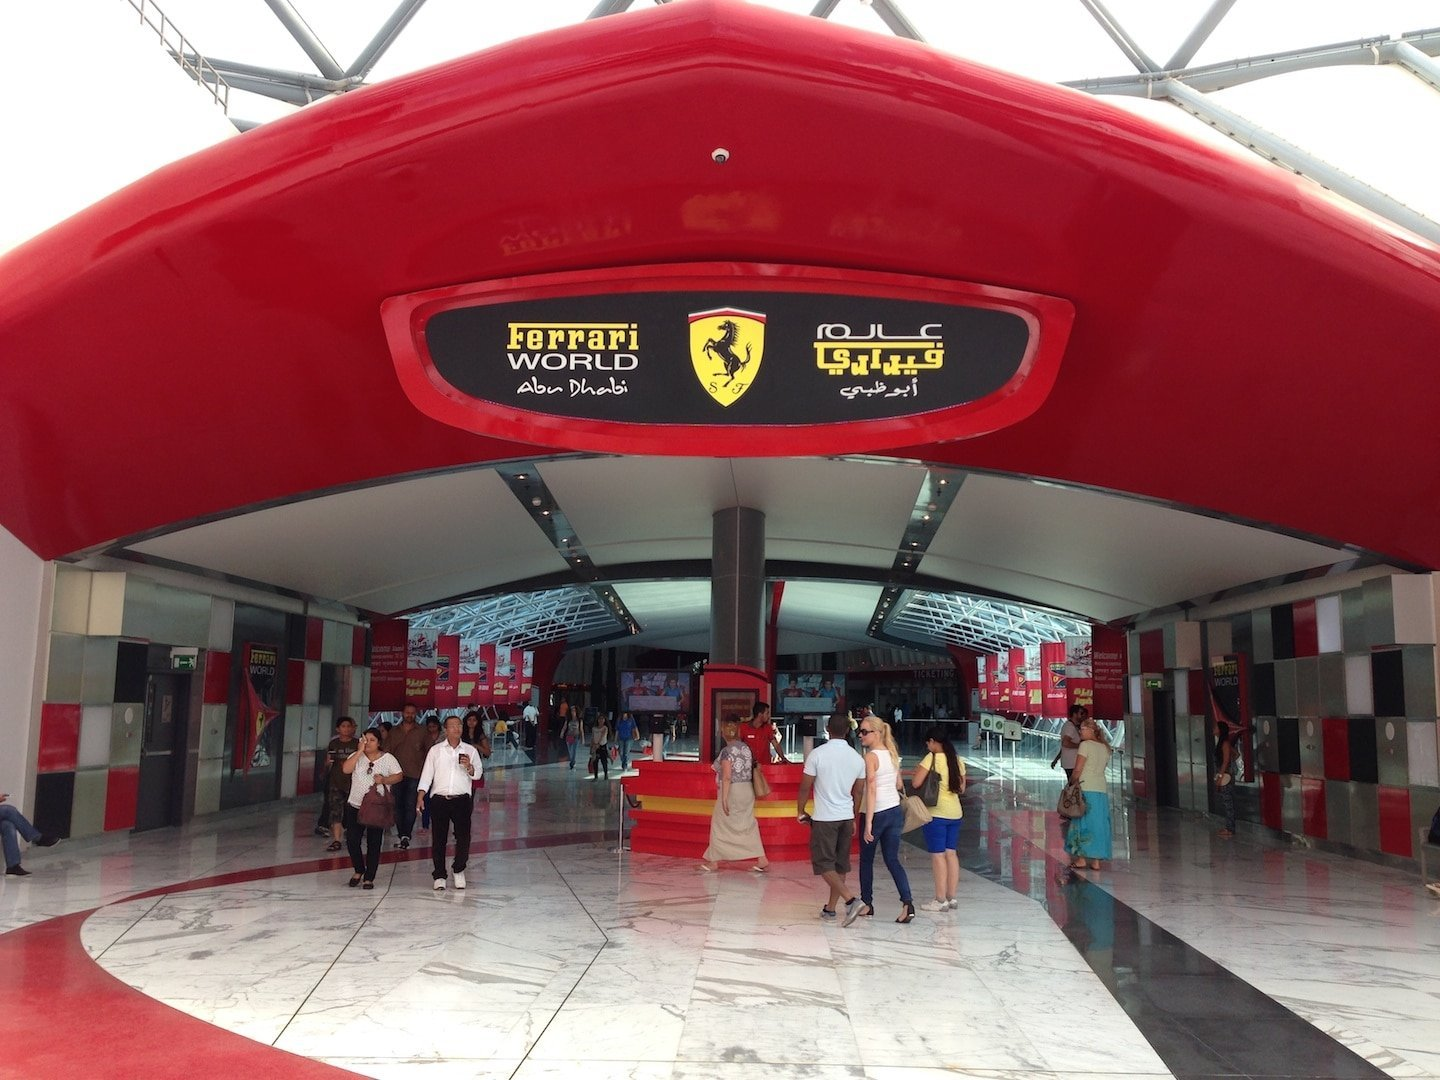 Mamma Rossella and Ferrari World Abu Dhabi